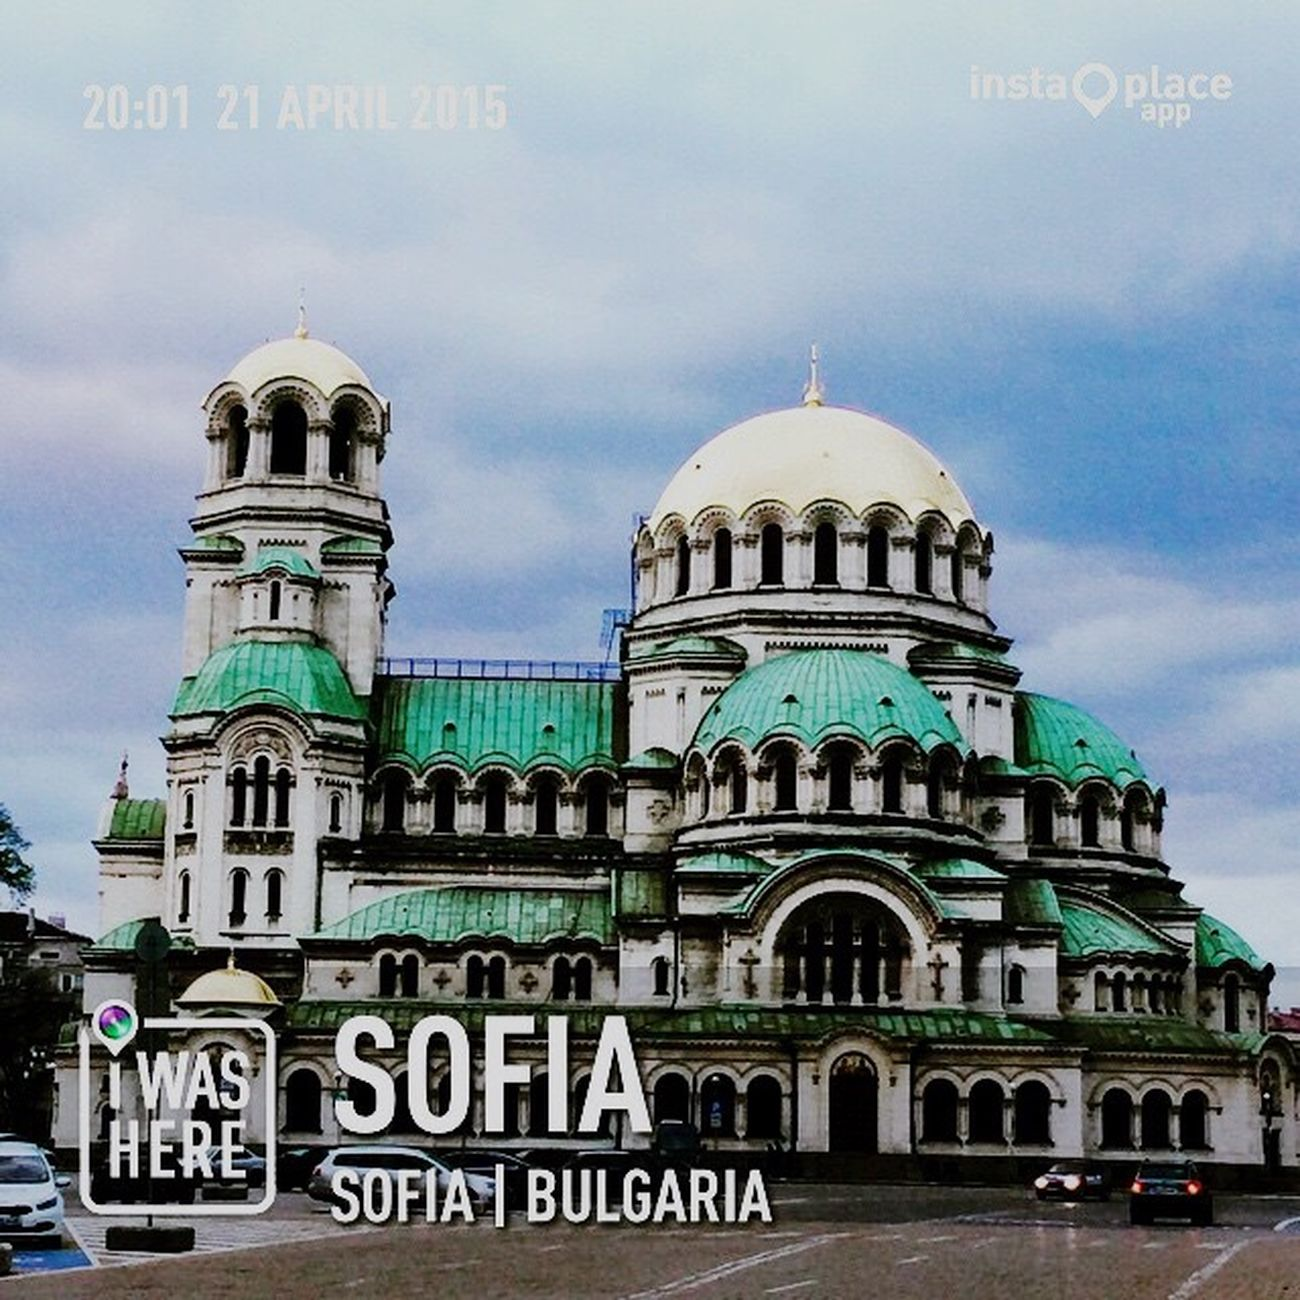 My Bulgaria Travel Series : Sofia, Bulgaria Historical Monuments Travel Photography Solotraveler Holy Place By Myself Landscape Lizara ❤️ ✨💋✨❤️✨